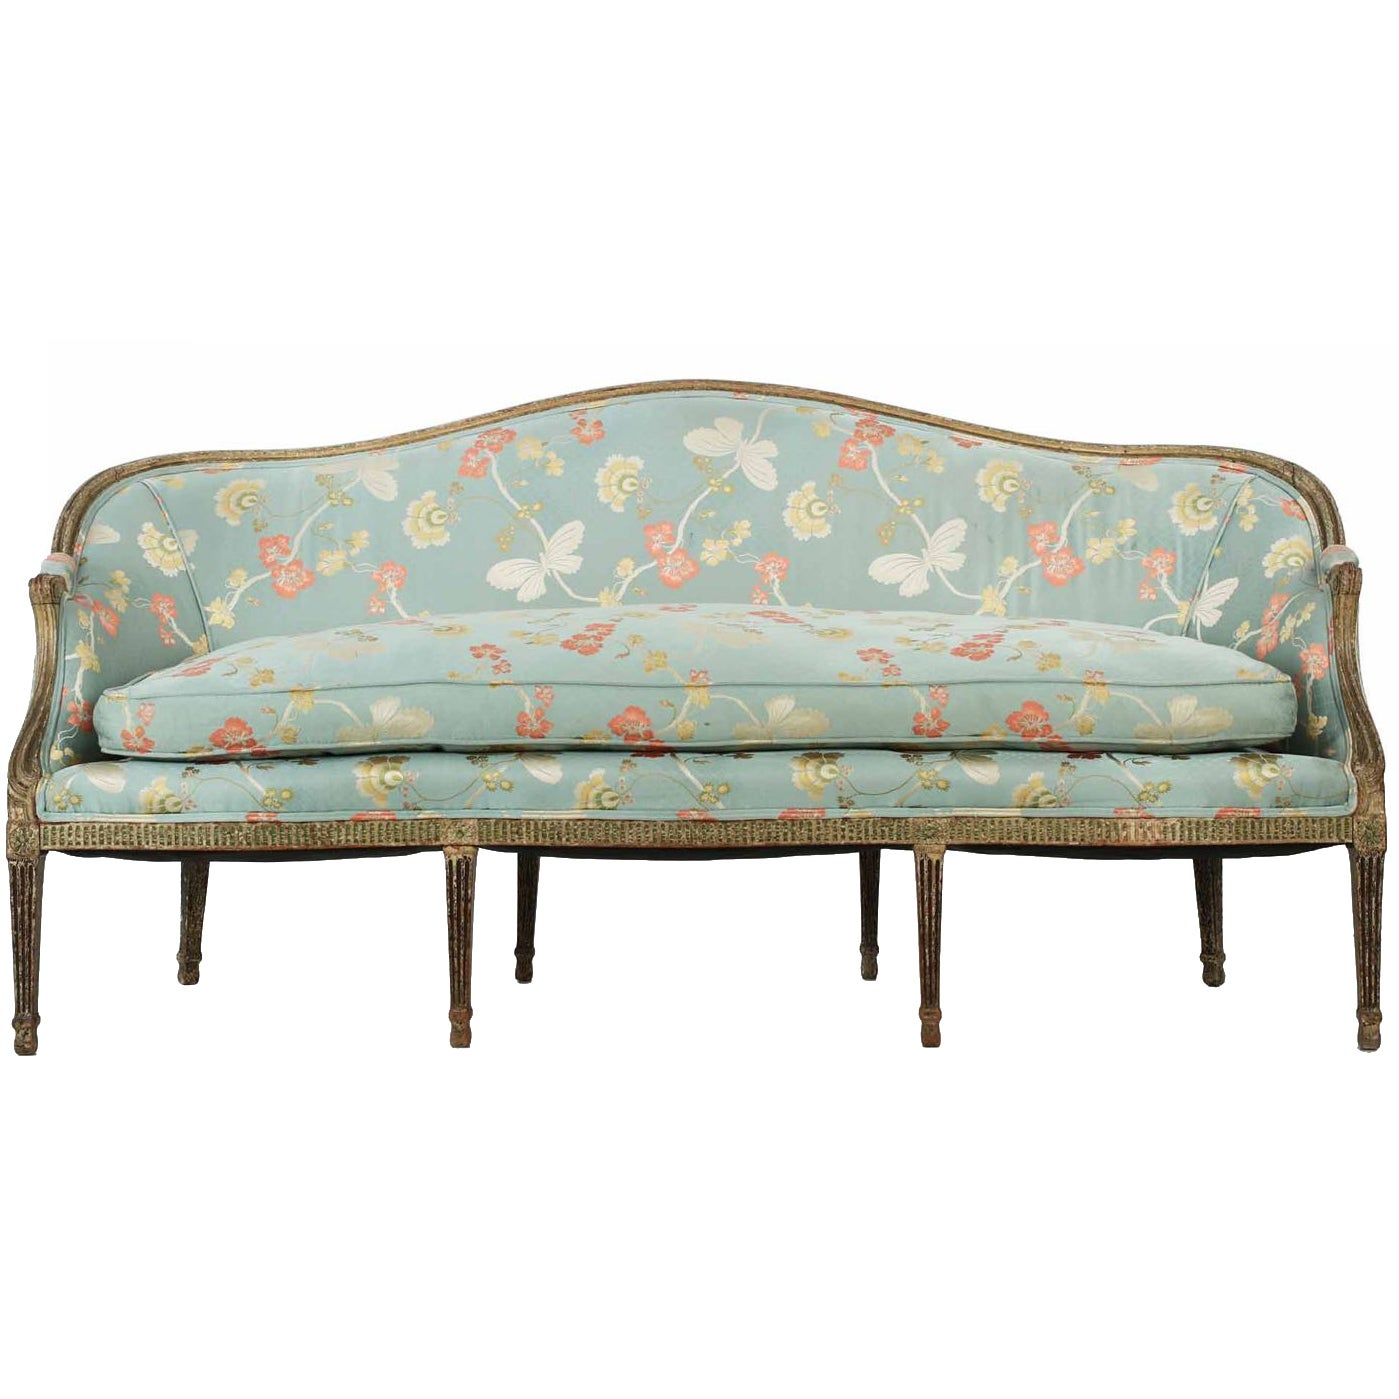 Canape Sofa 18th Century English George Iii Period Canapé Sofa In Early Paint Circa 1780